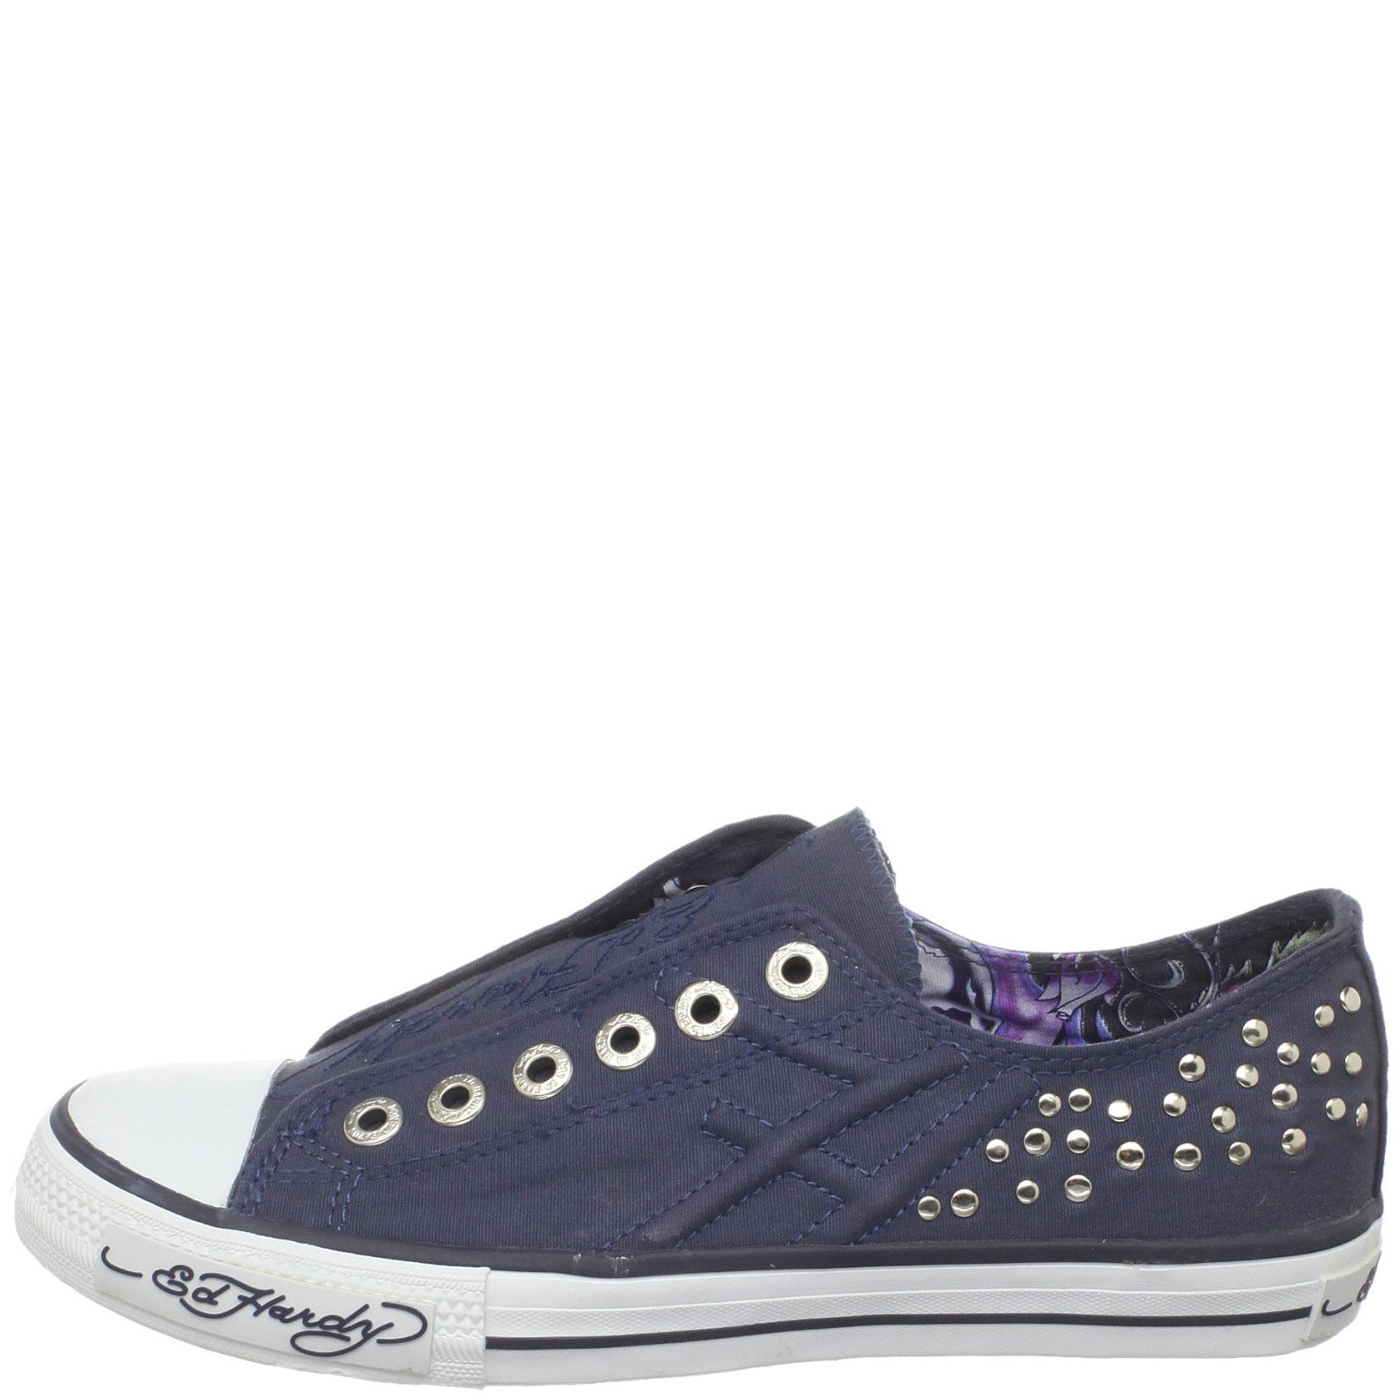 Ed Hardy Dakota Shoe for Women - Navy